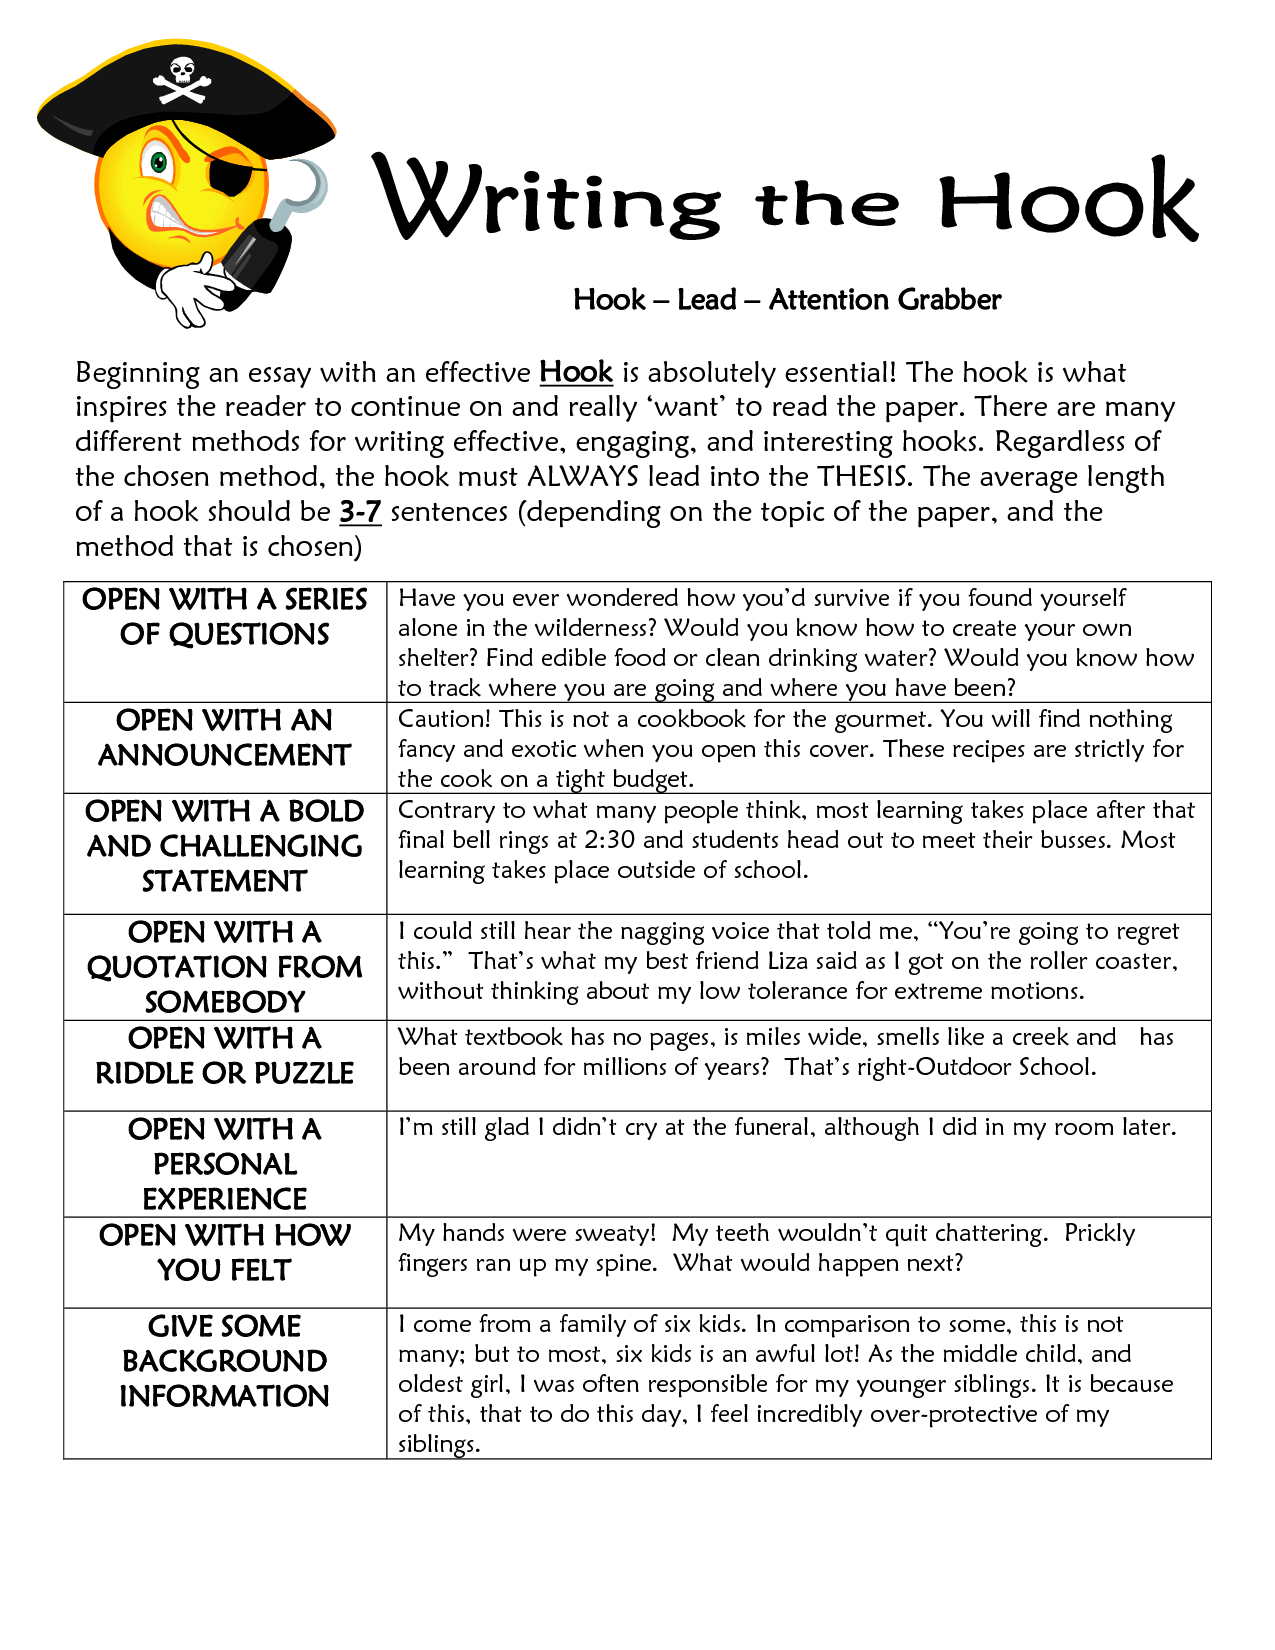 How to Write a Hook sentence?